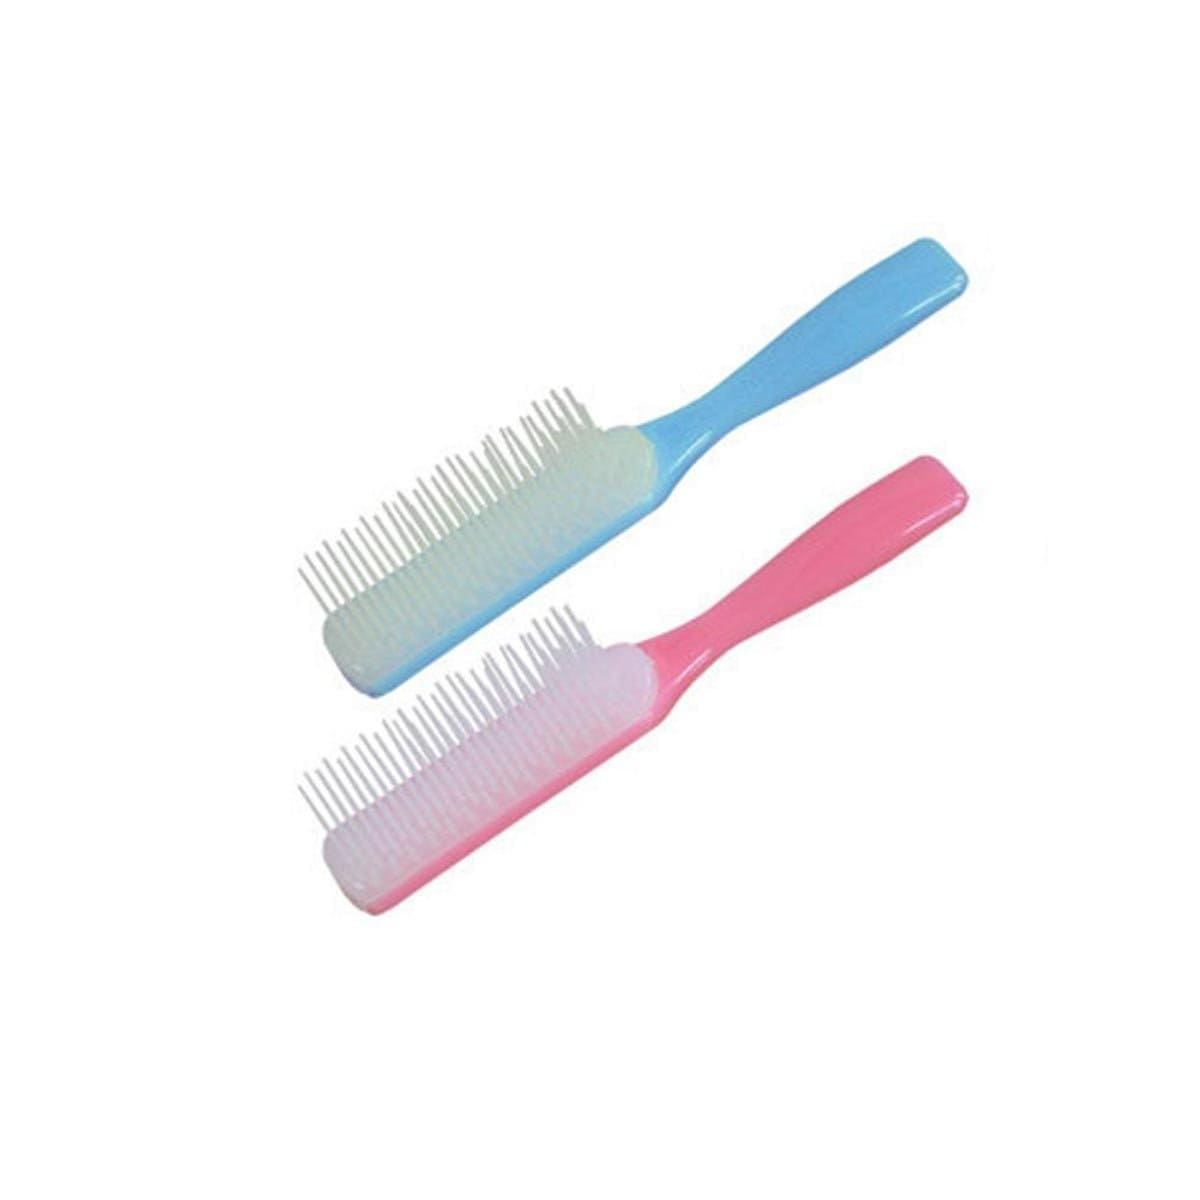 Japanese Plastic Smooth Wide Comb Brush